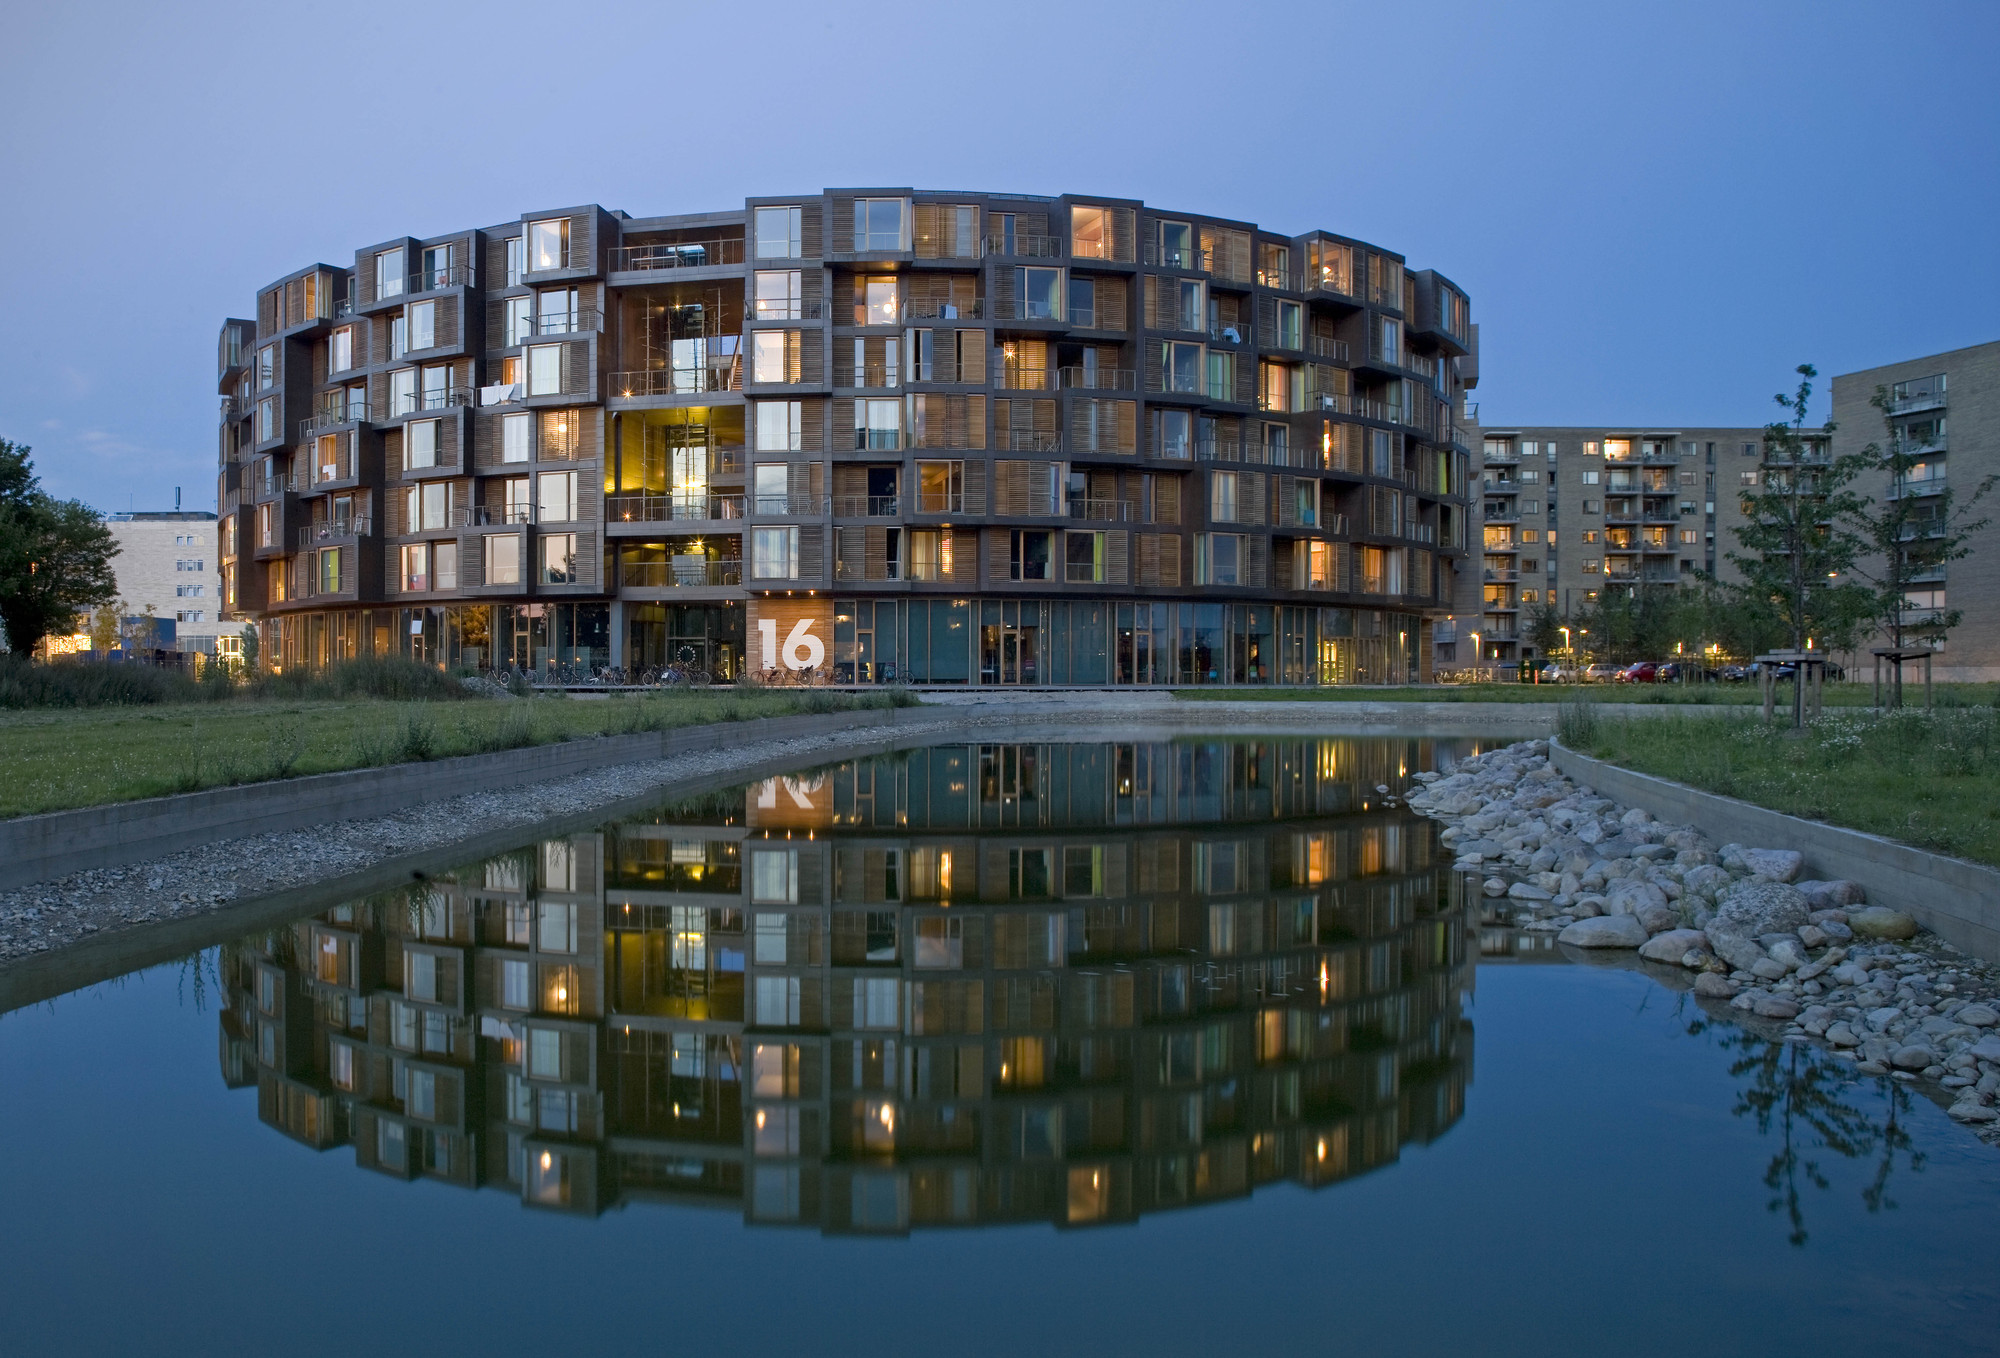 Nordic Wood Festival of Wooden Architecture, Courtesy of Central House of Architects